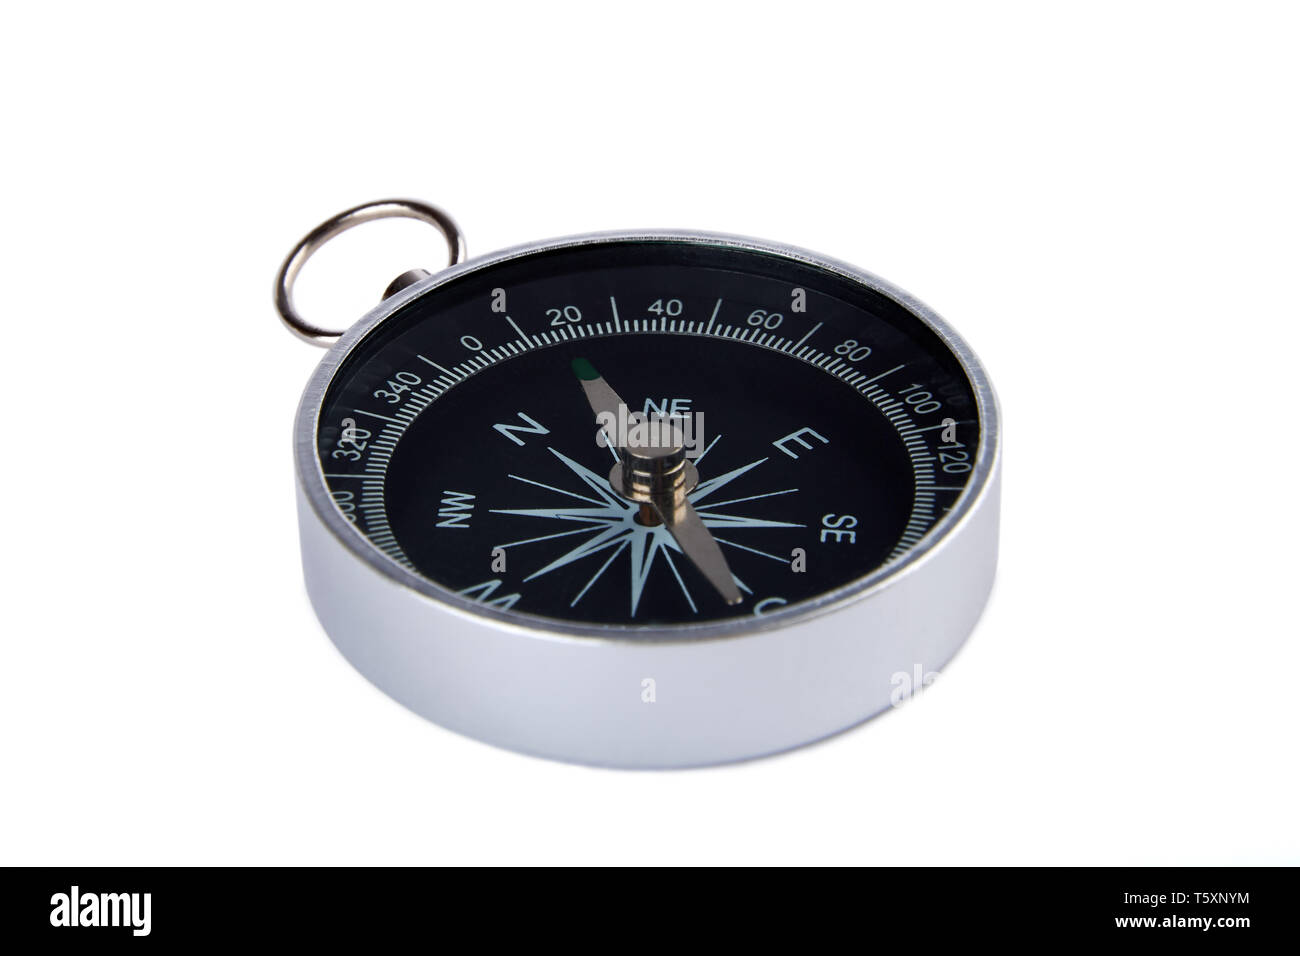 Detailed view of a magnetic compass silver and black color, isolated on white background. - Stock Image